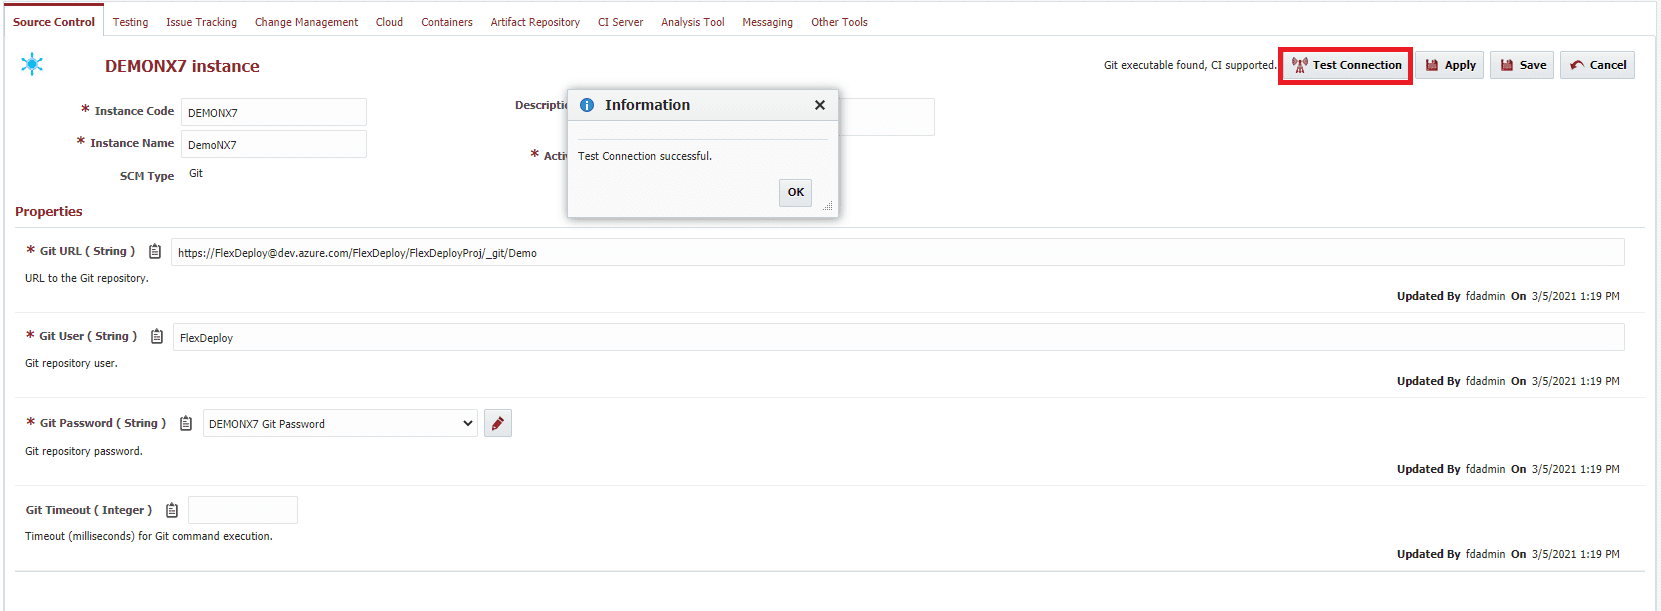 Successful Test Connection on Source Control tab